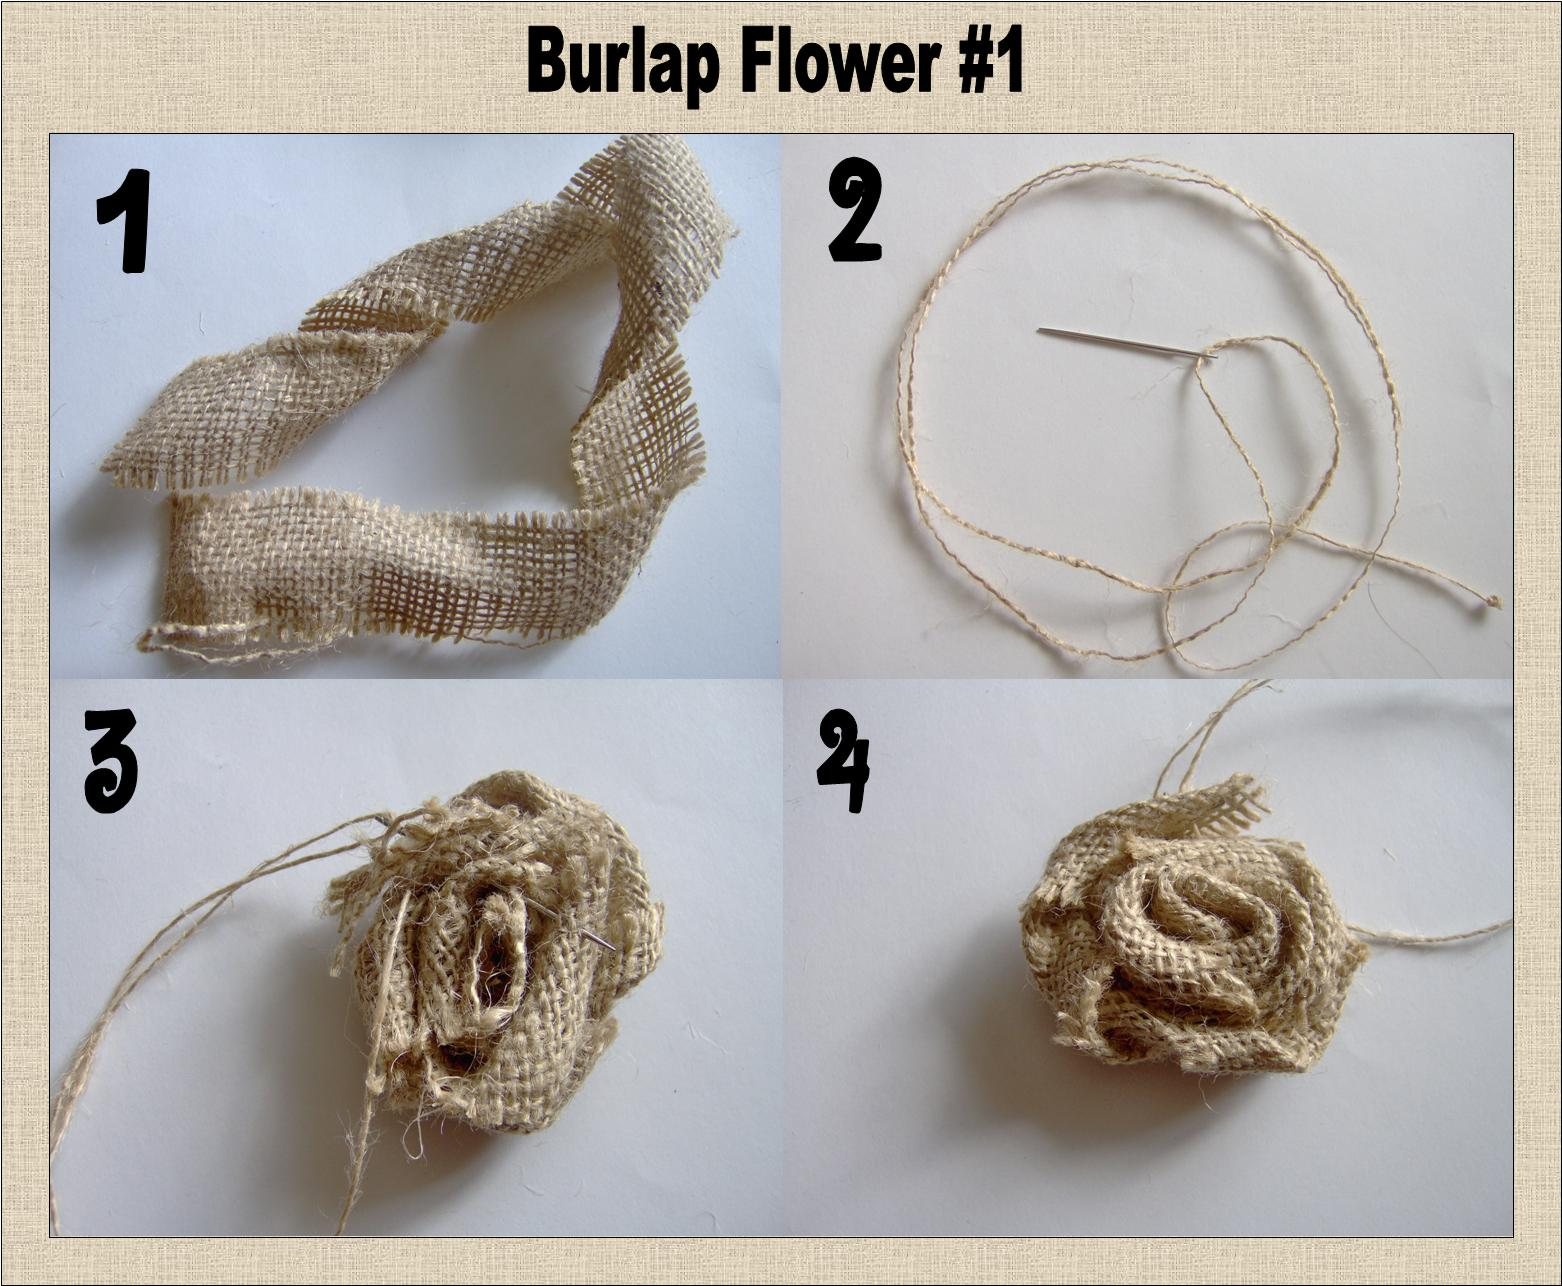 Today s Fabulous Finds 3 Burlap Flower Tutorials